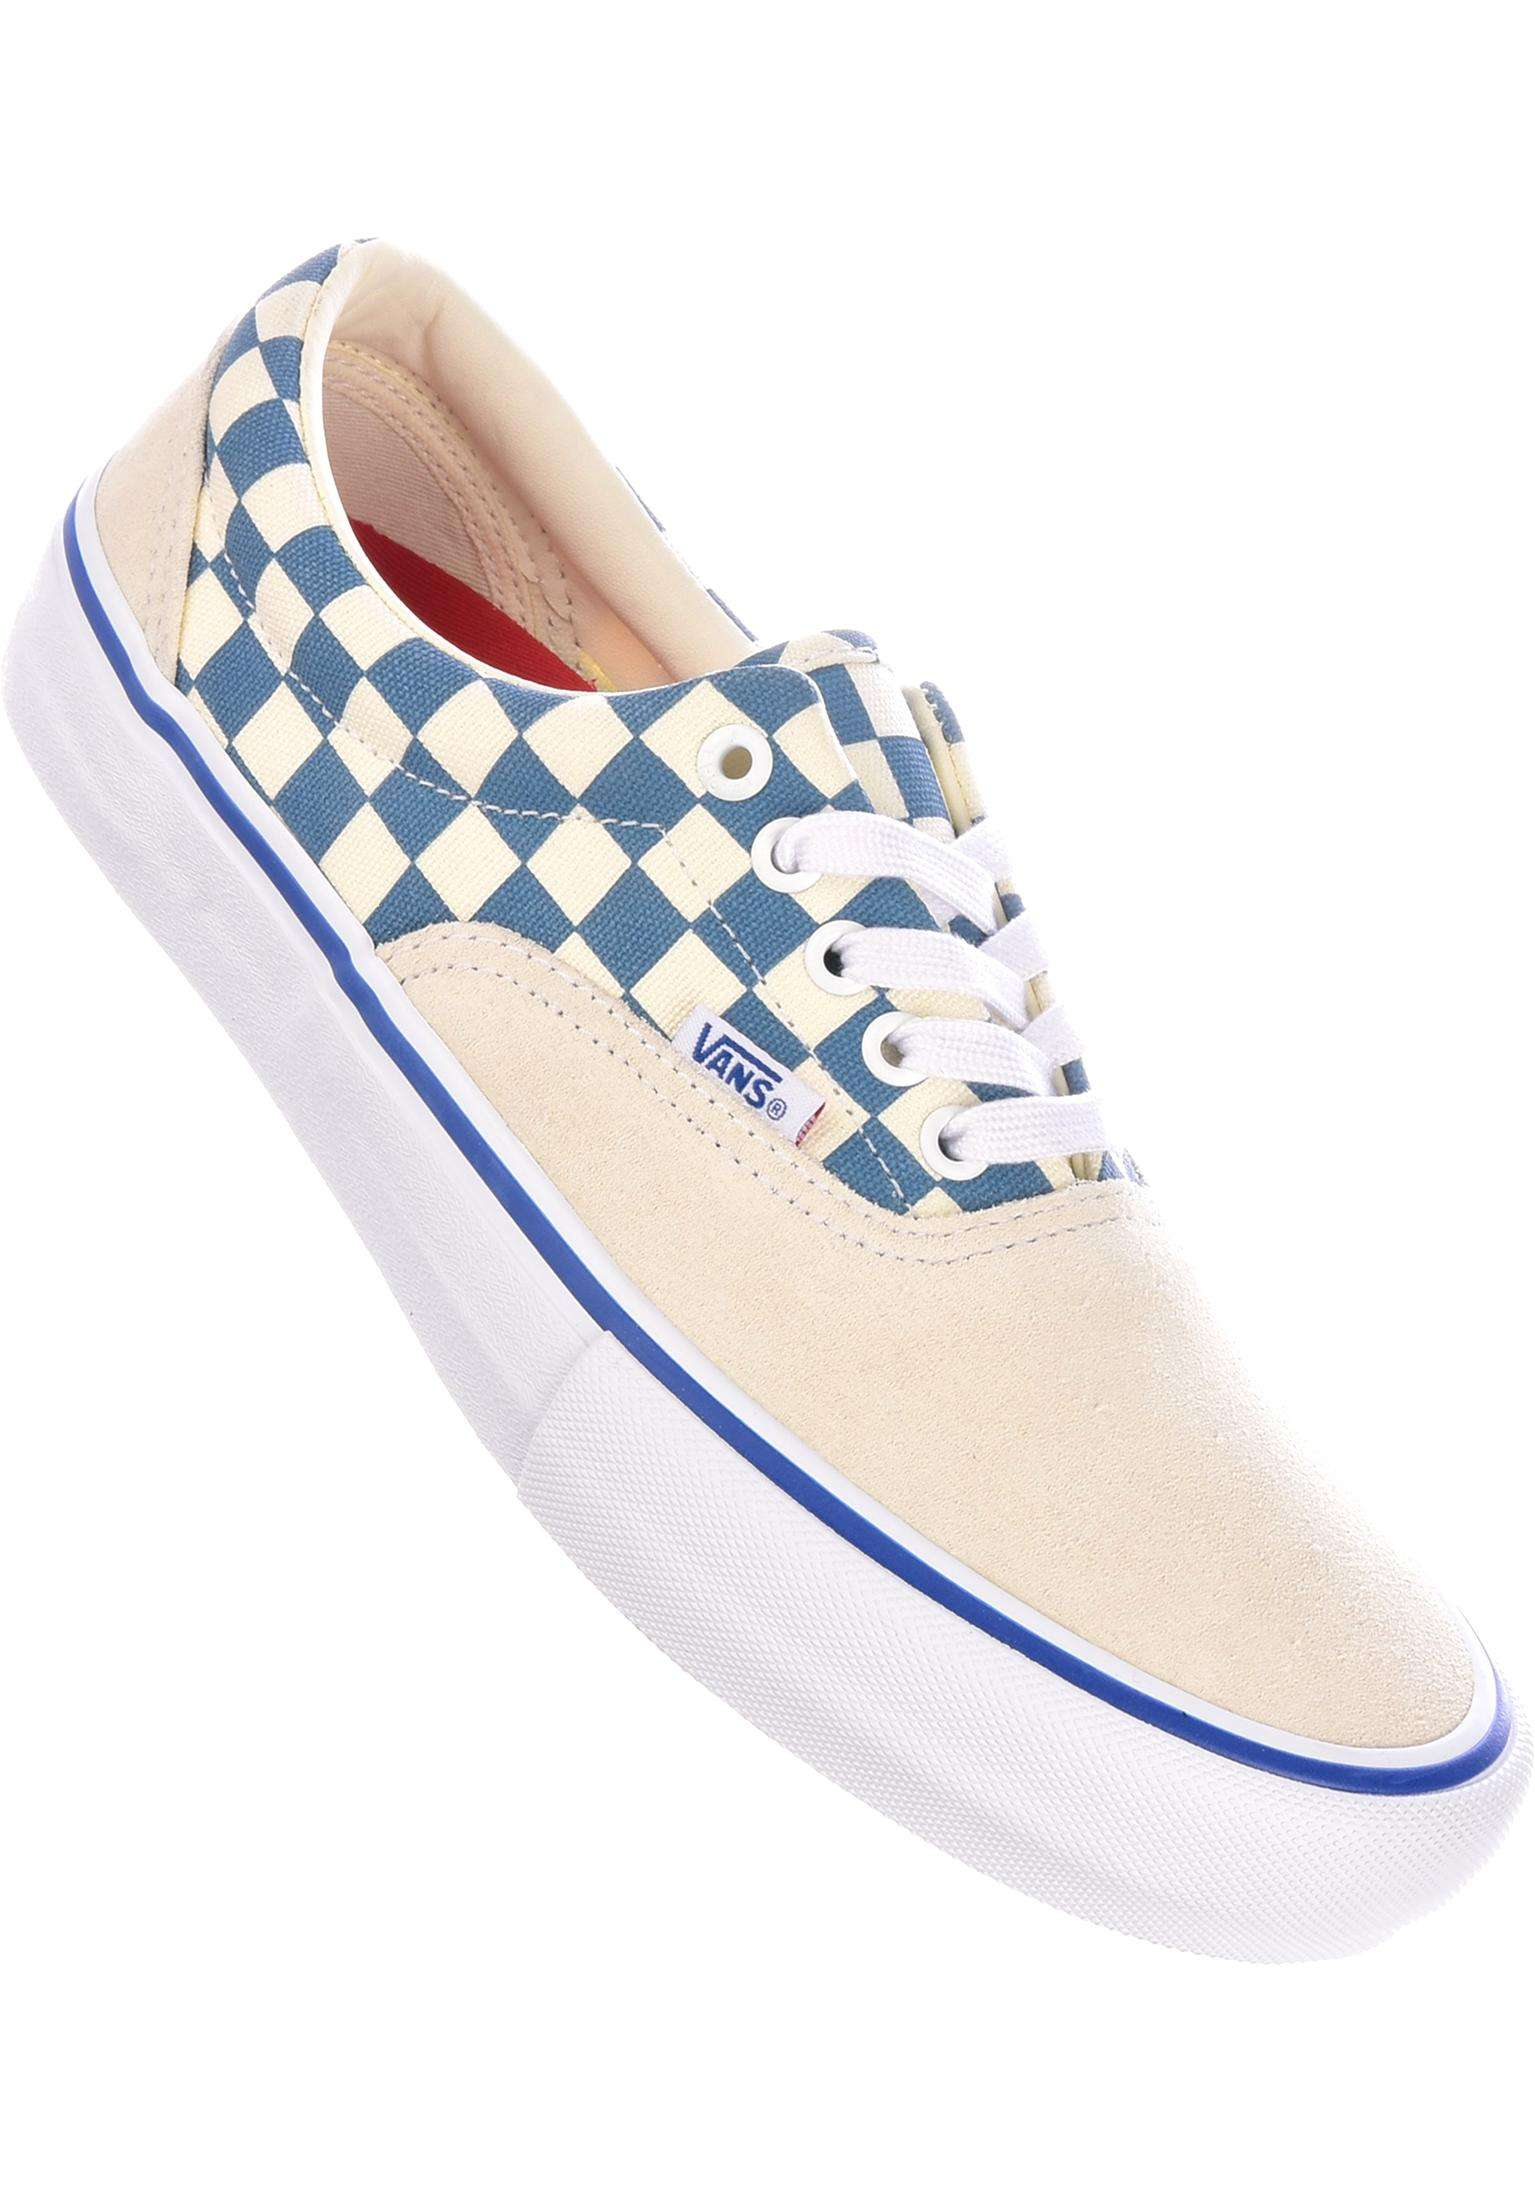 9b8d1ae2ff1a8c Era Pro Vans All Shoes in checker-white-blueashes for Men